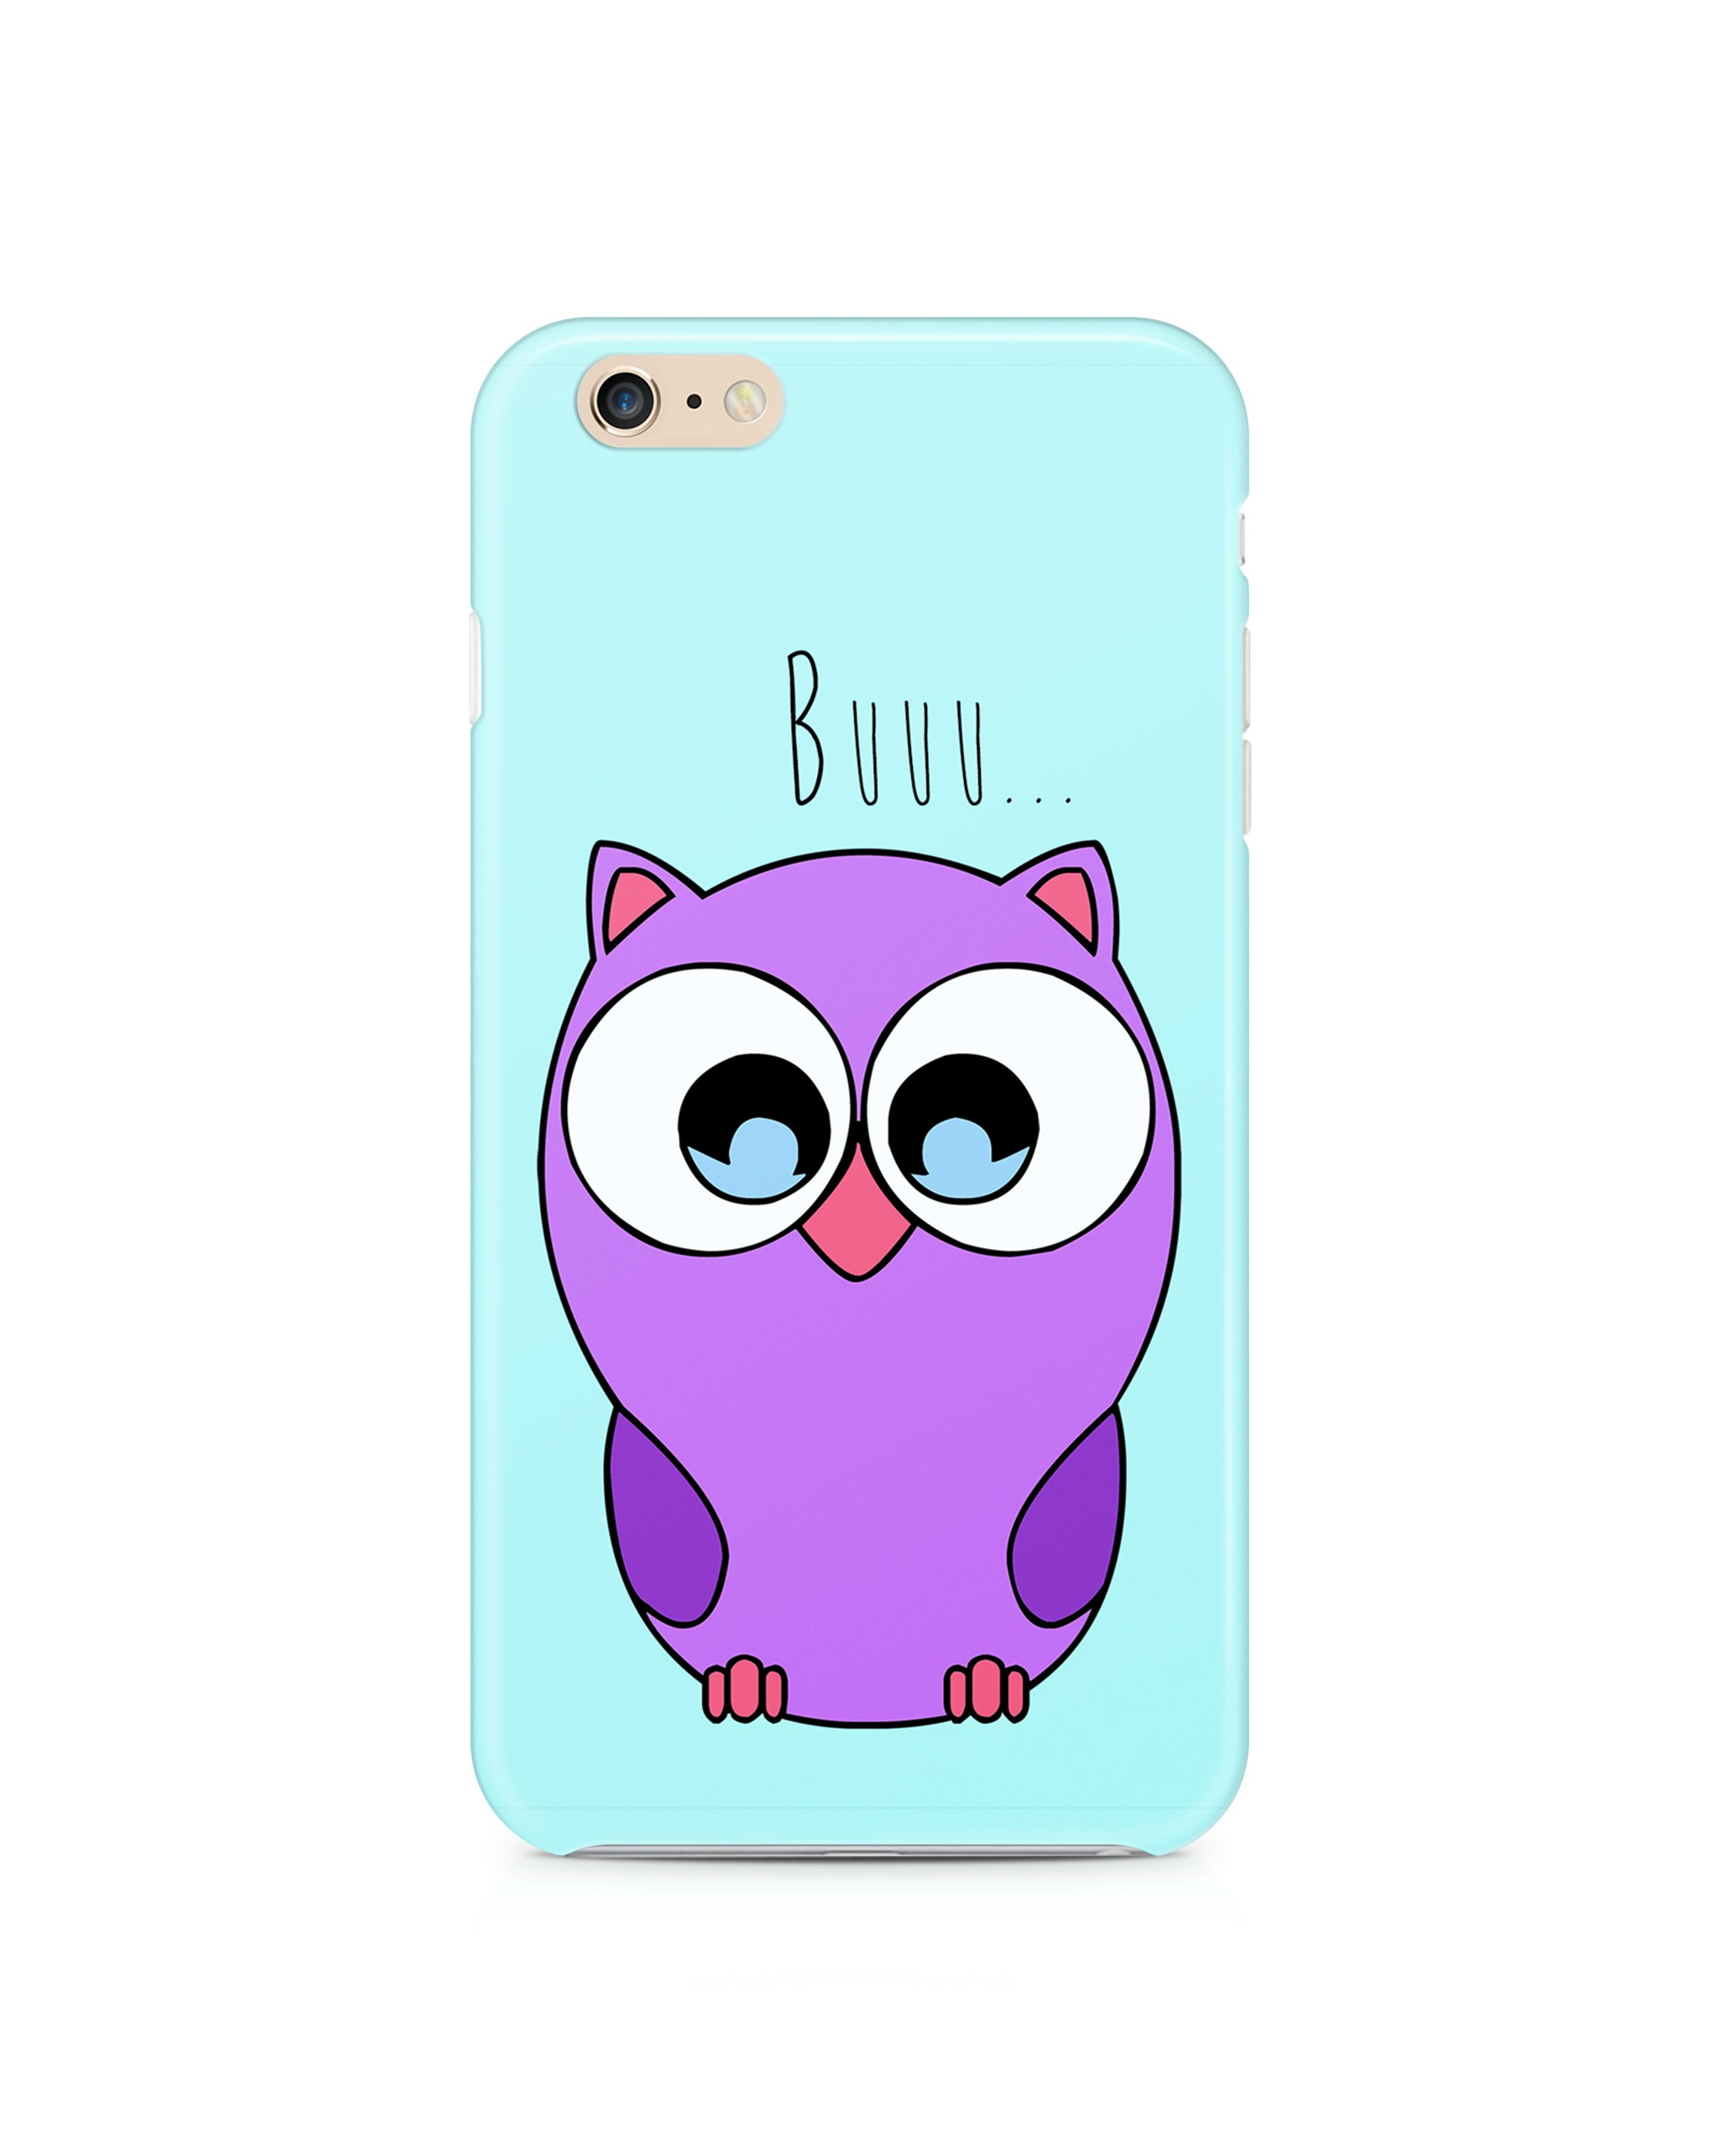 Etui iPhone Buu - 27751